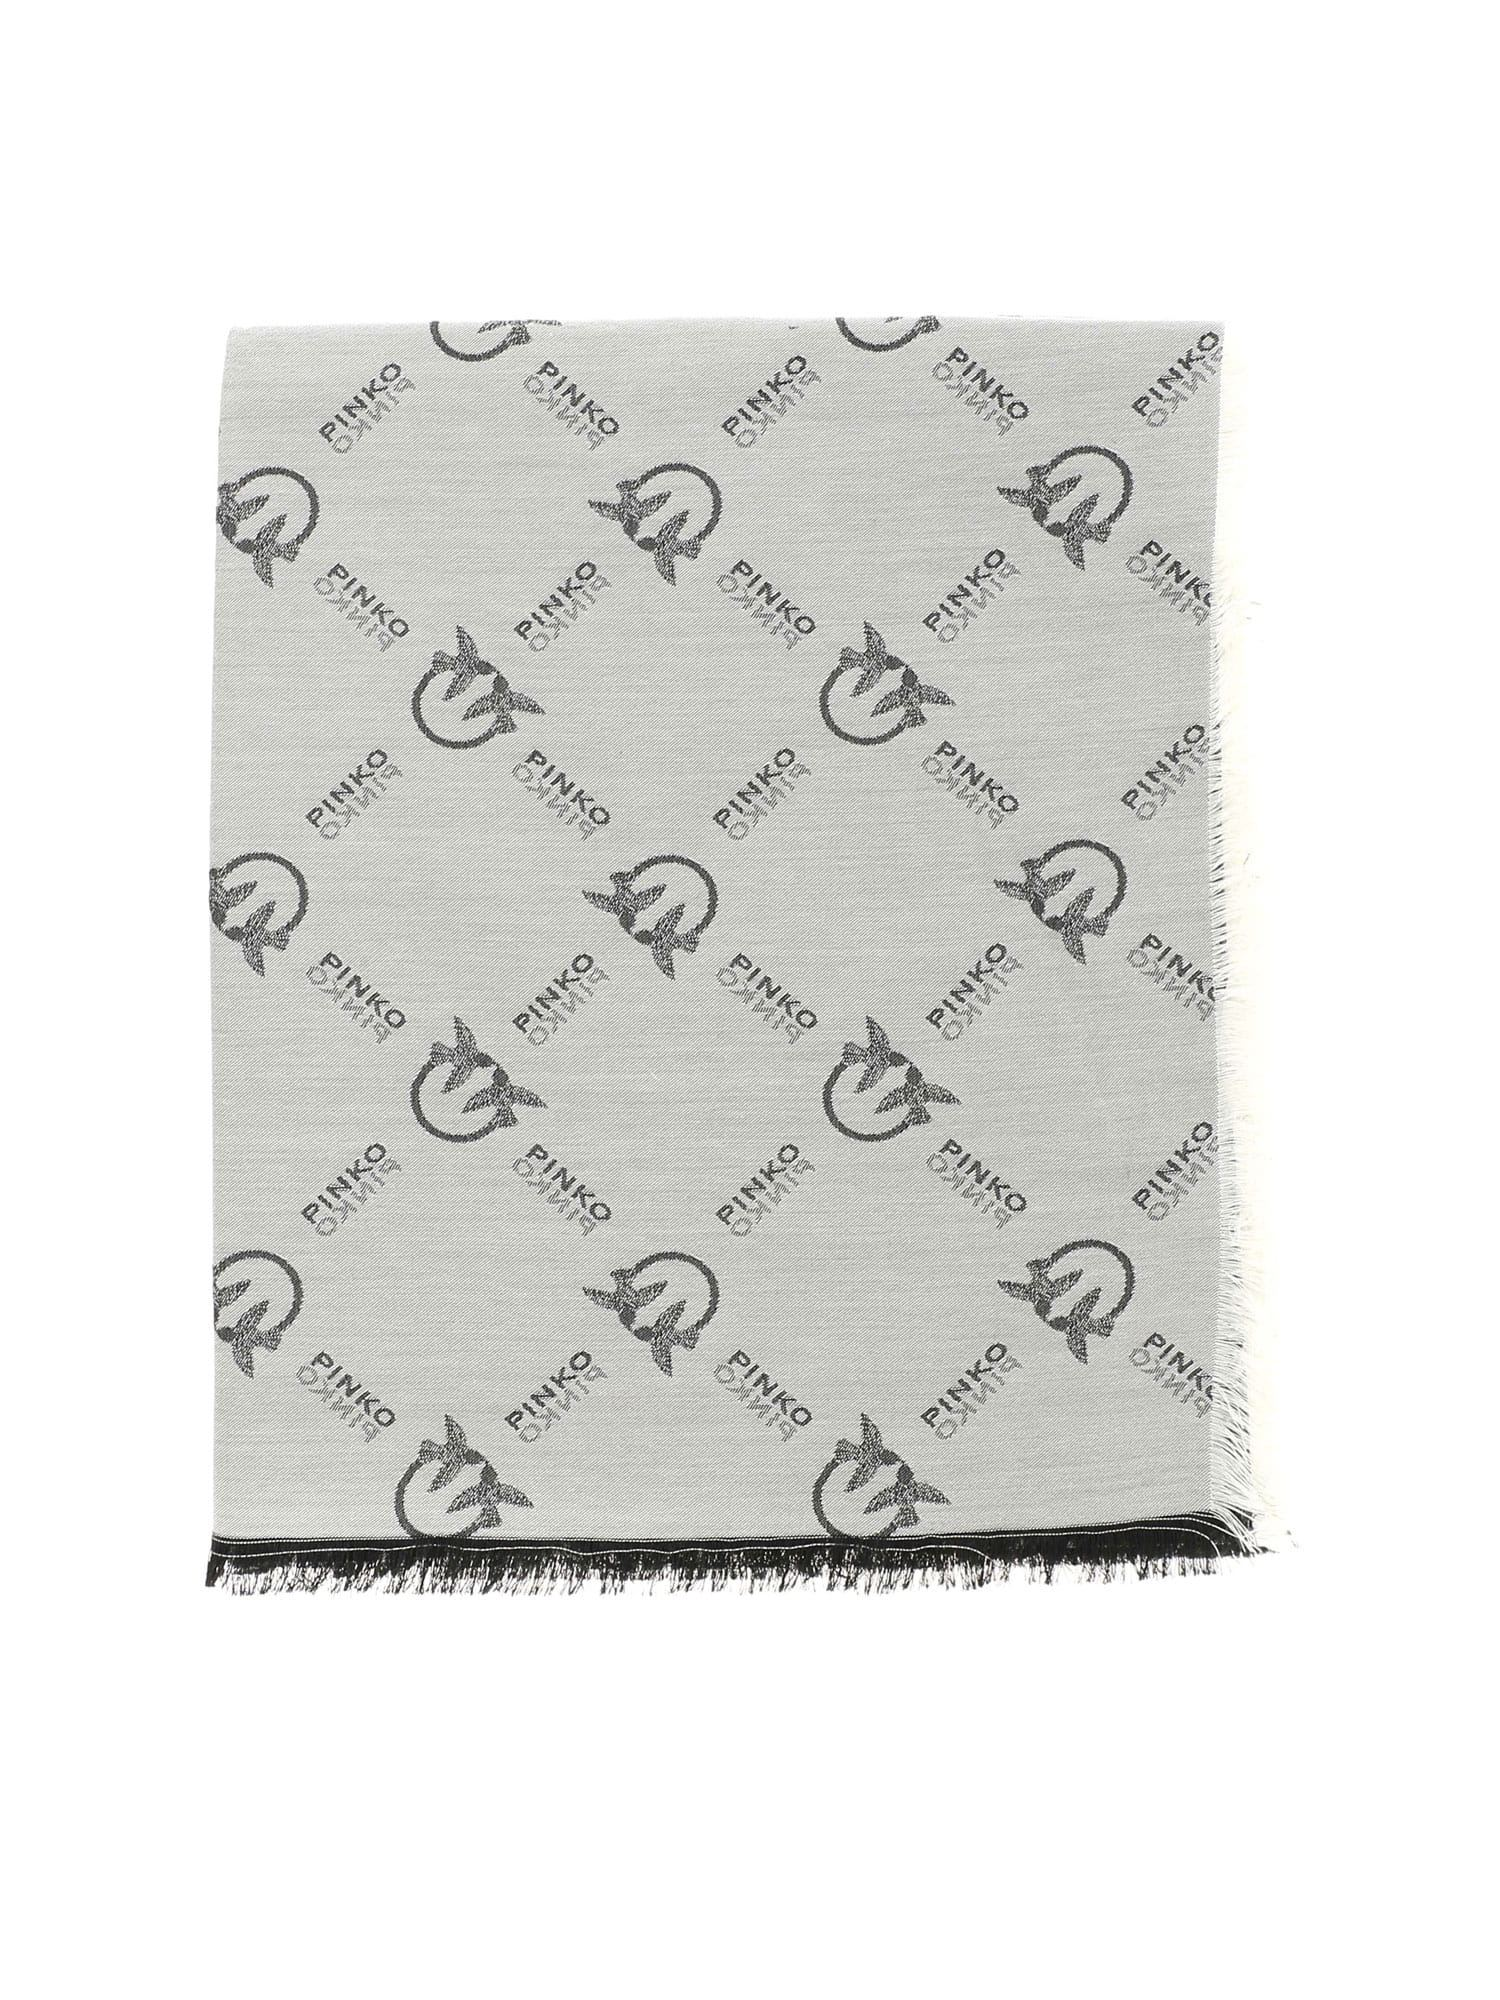 Pinko PINKO BREVIS 1 SCARF IN WHITE AND BLACK